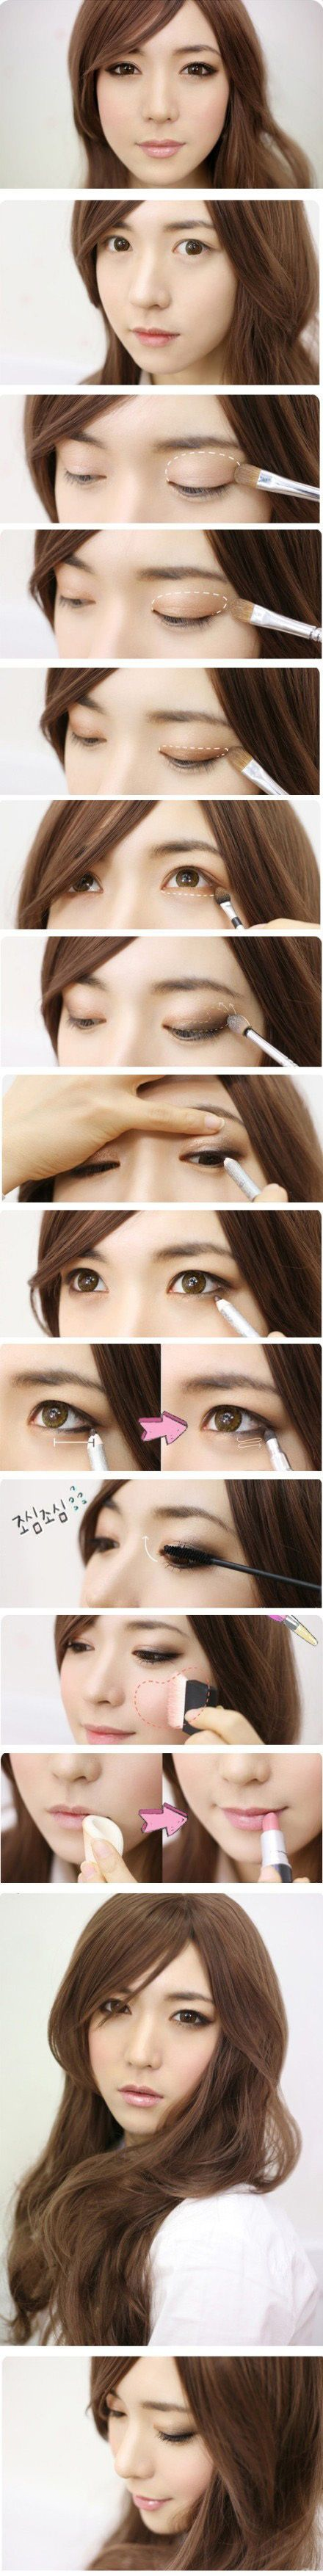 Eyes makeup pictorial - Gorgeous soft #eyes #makeup #tutorial